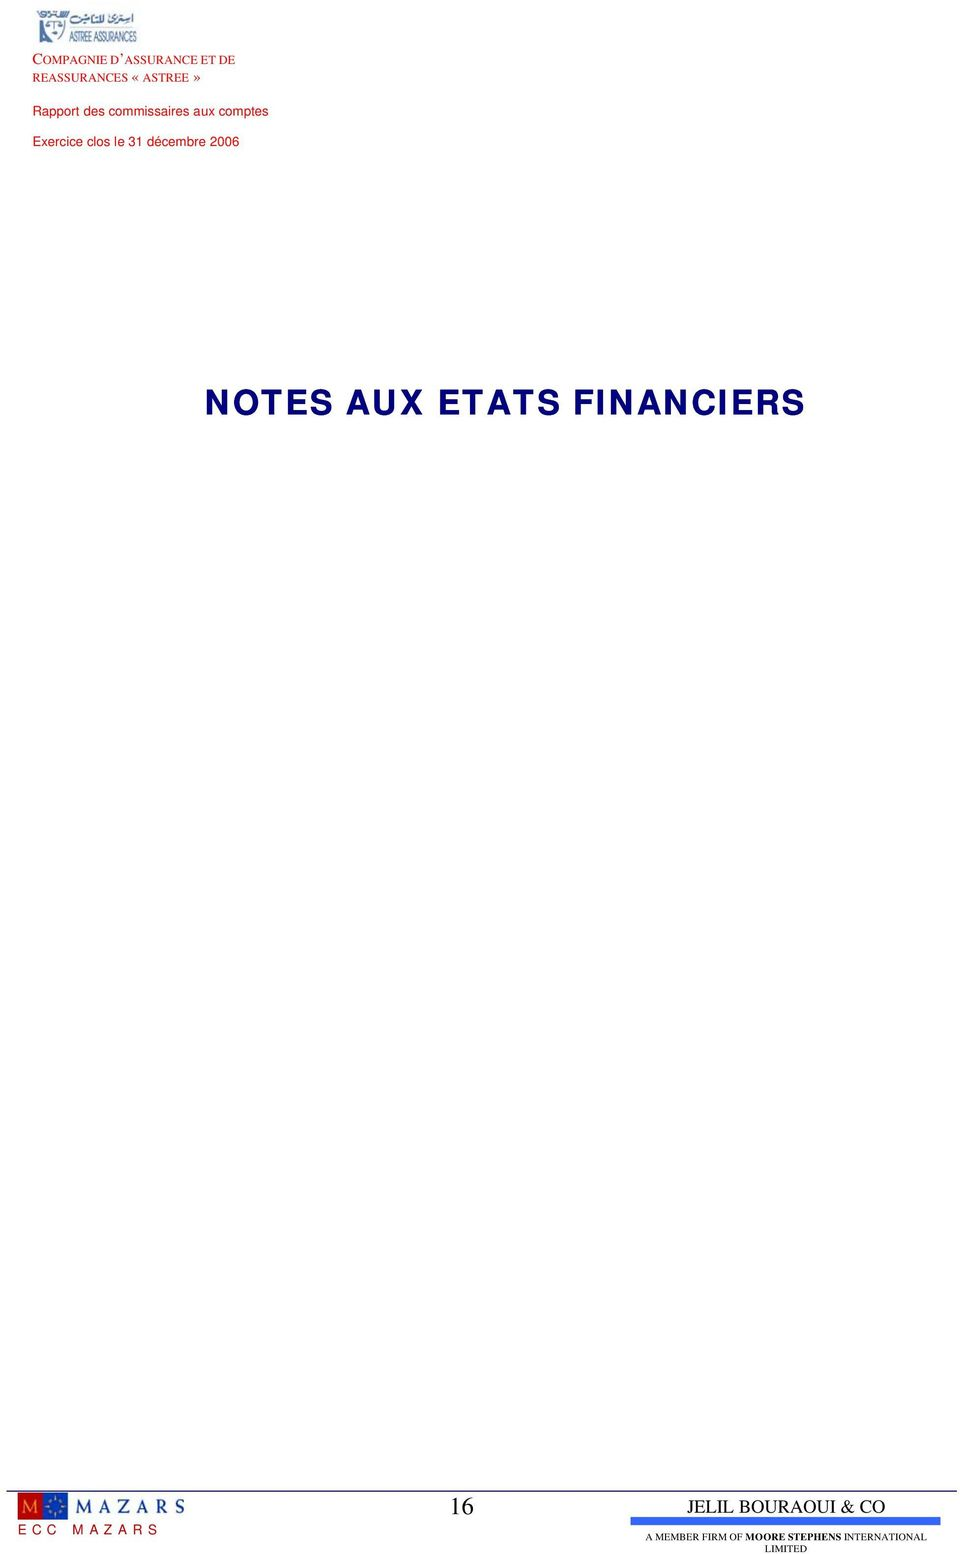 2006 NOTES AUX ETATS FINANCIERS ECC MAZARS 16 JELIL